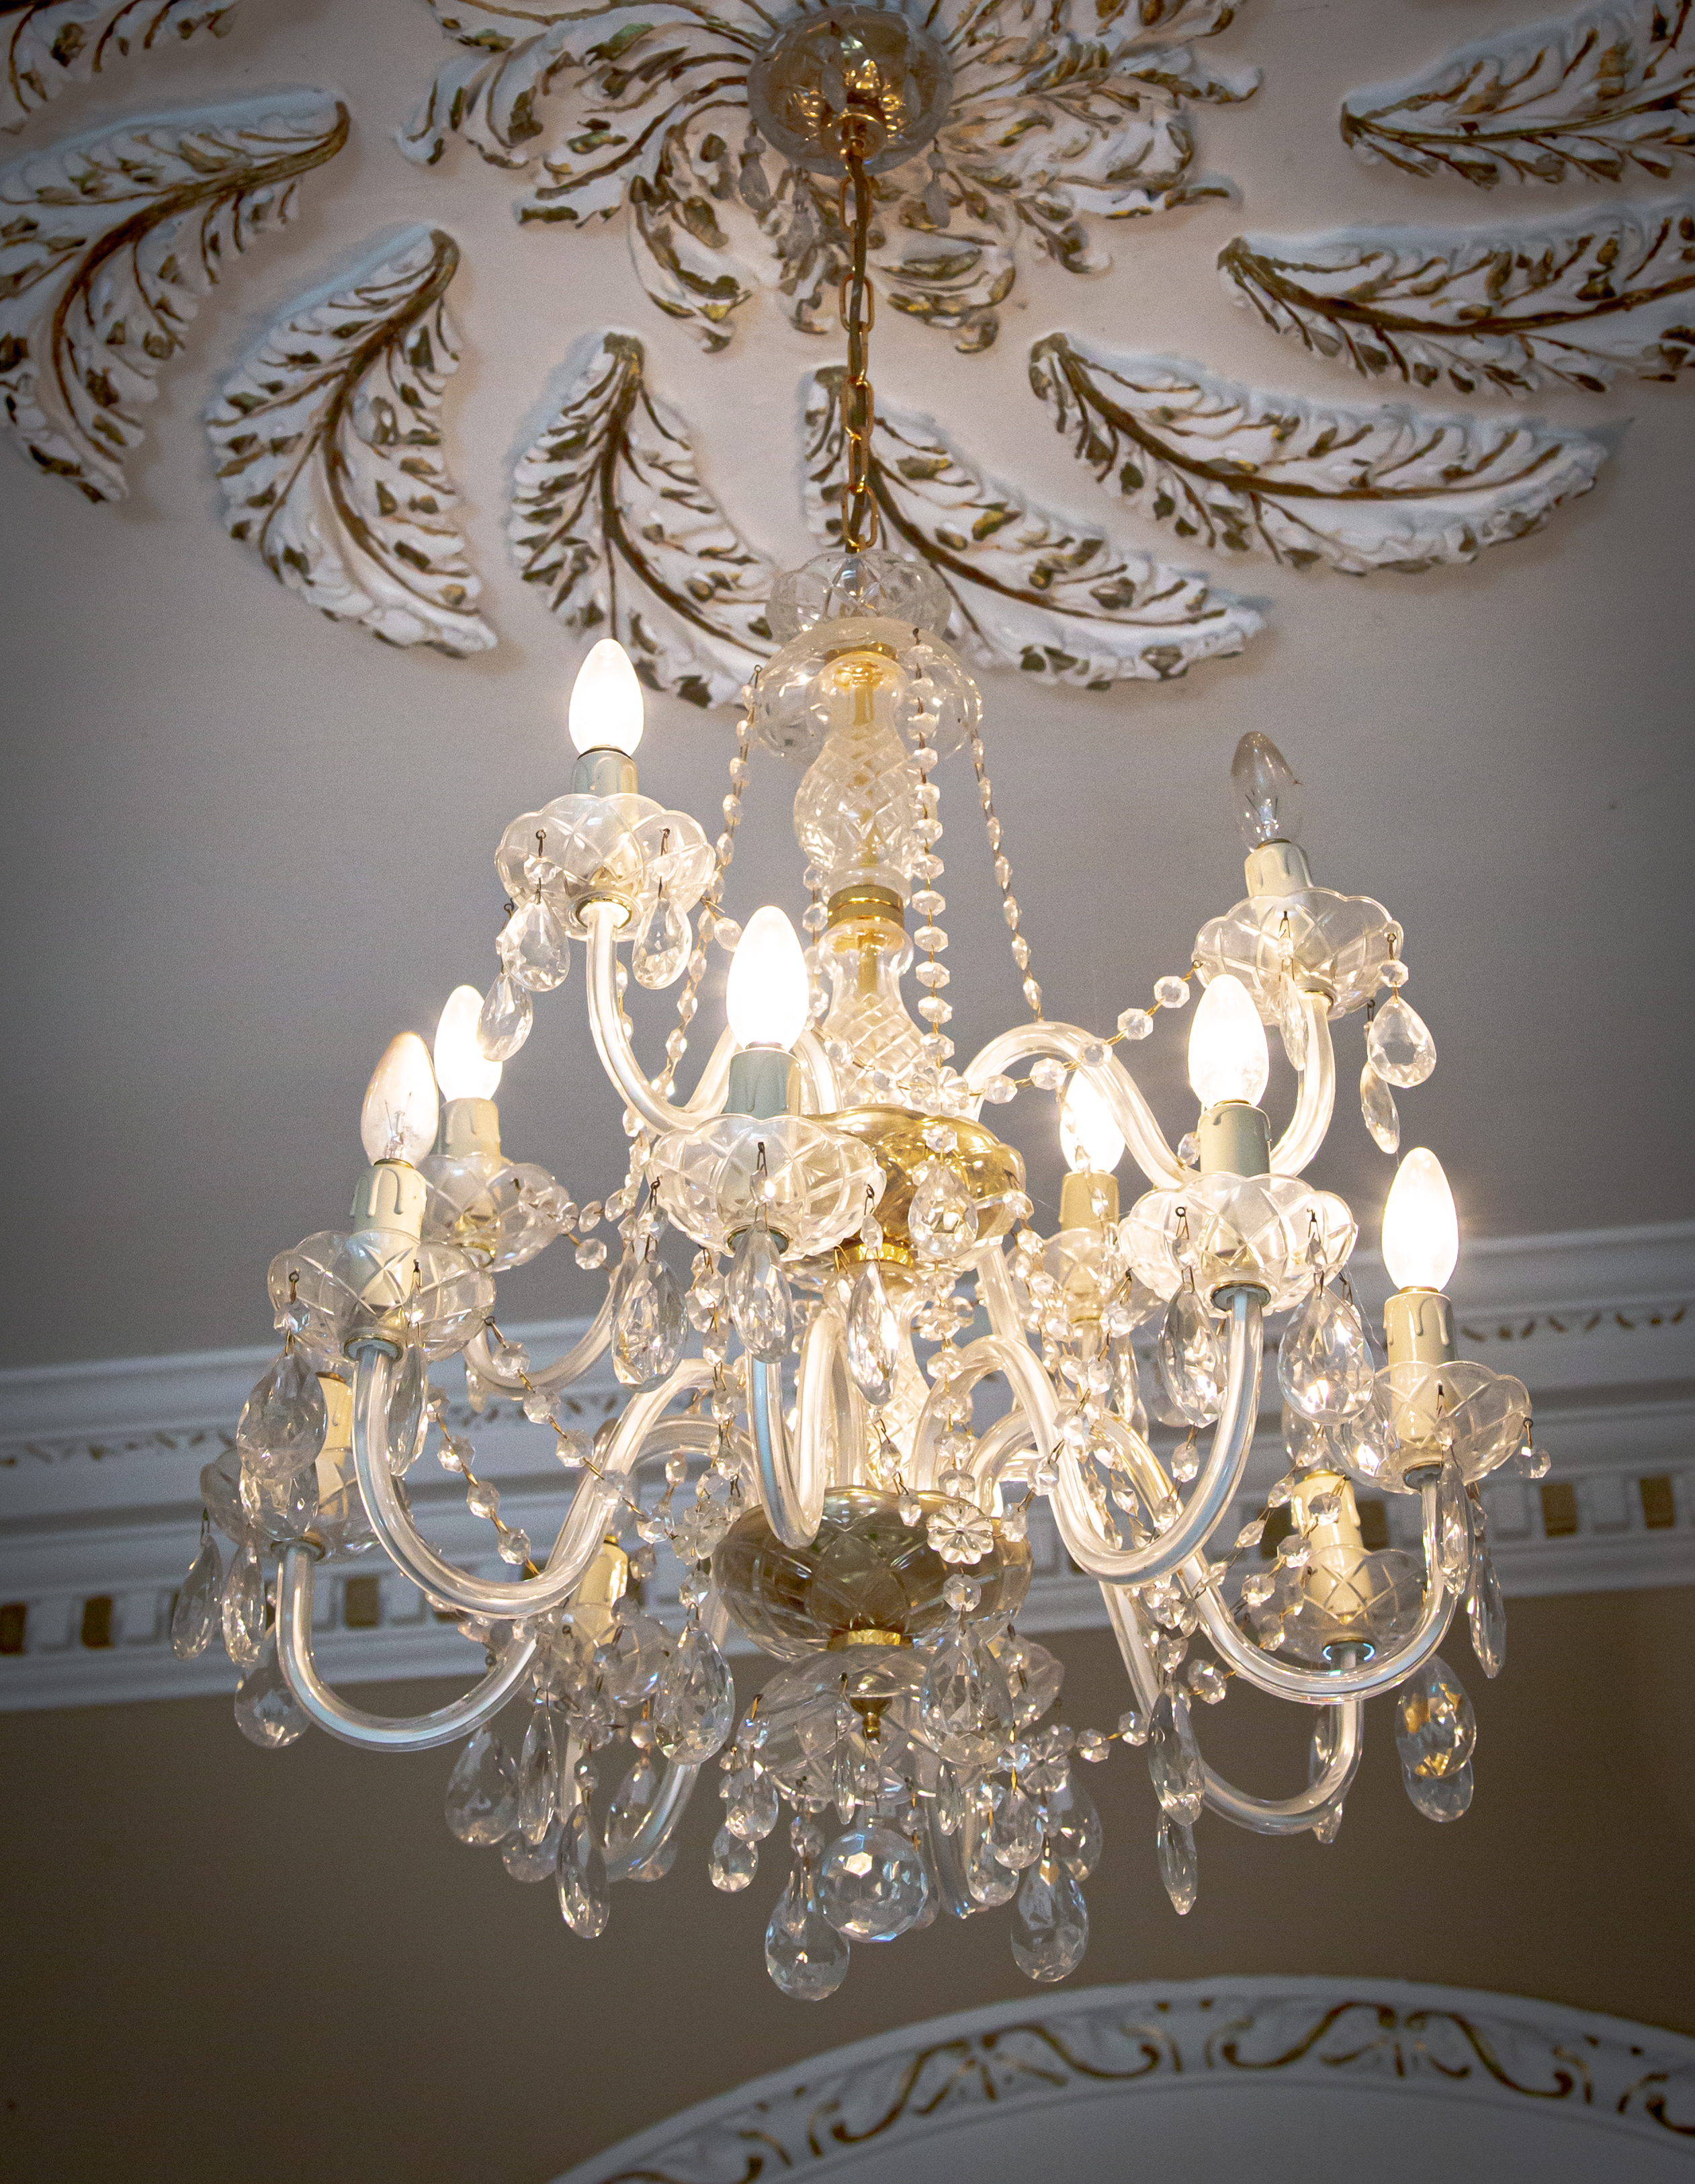 A superb crystal Chandelier, with 18 arms on three levels (3, 6 & 9) with festoons of buttons and